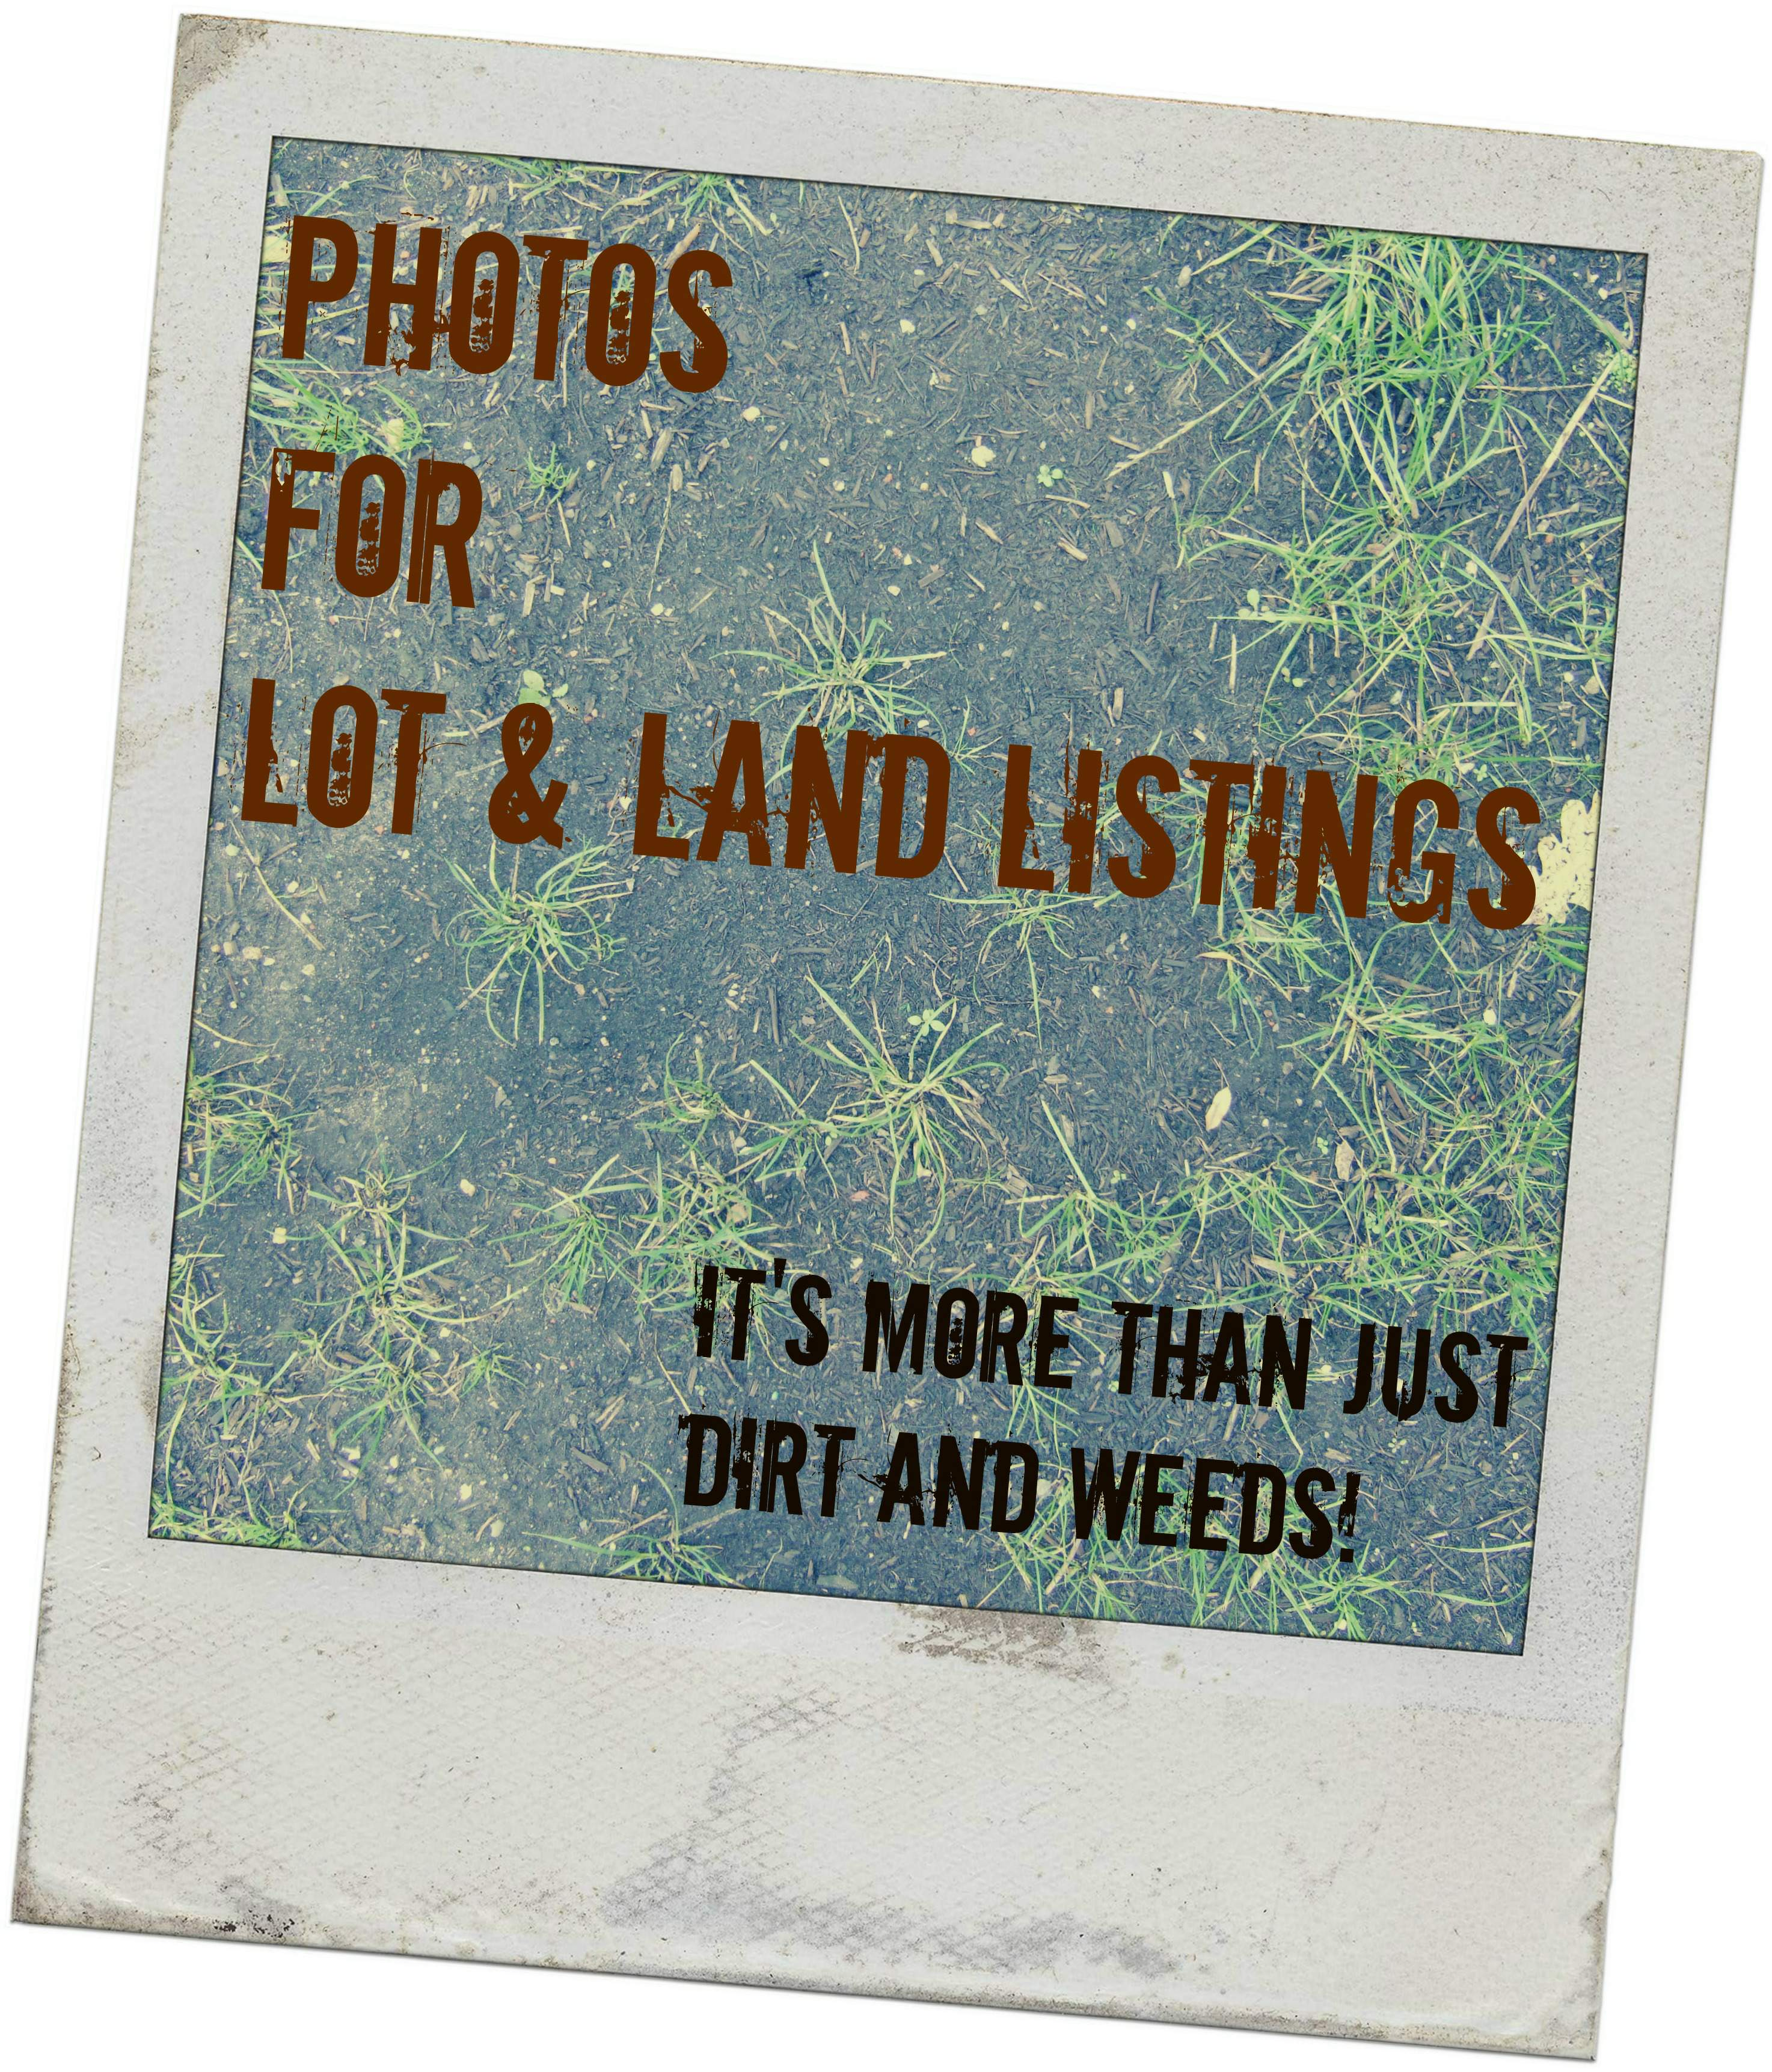 Photo of land and weeds with words Photos for Lot & Land Listings: It's More Than Just Dirt and Weeds